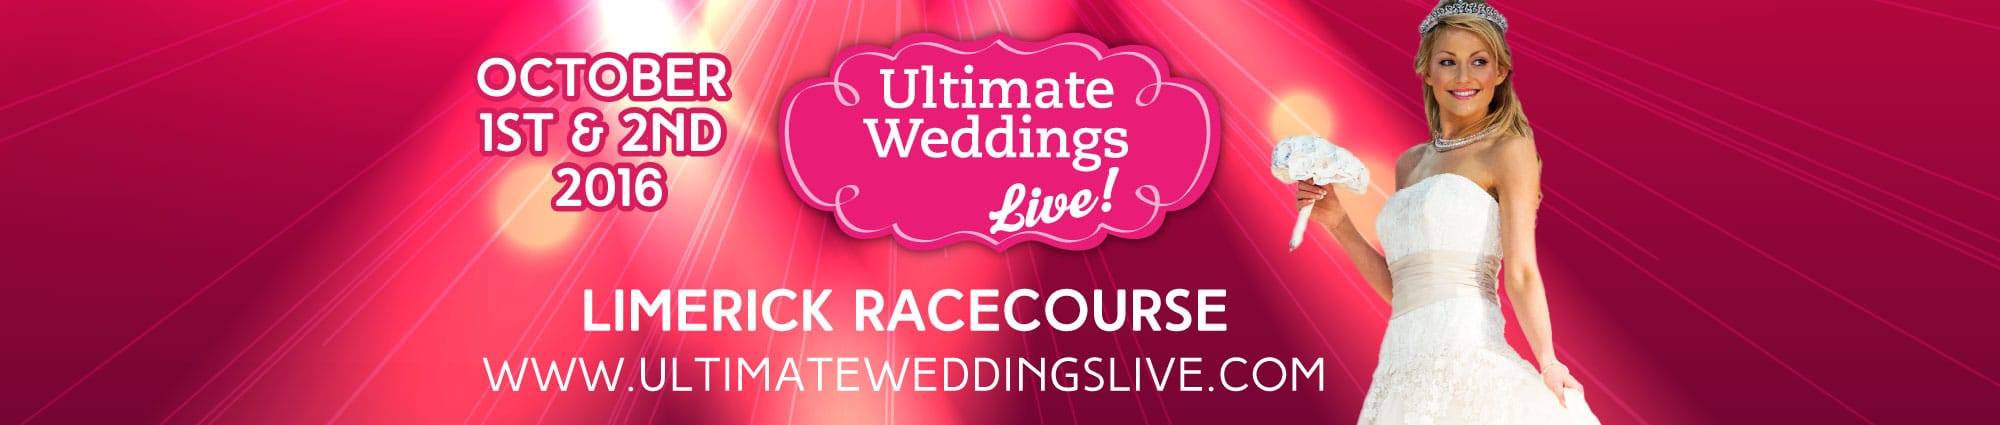 ultimate-Weddings-Live-Limerick